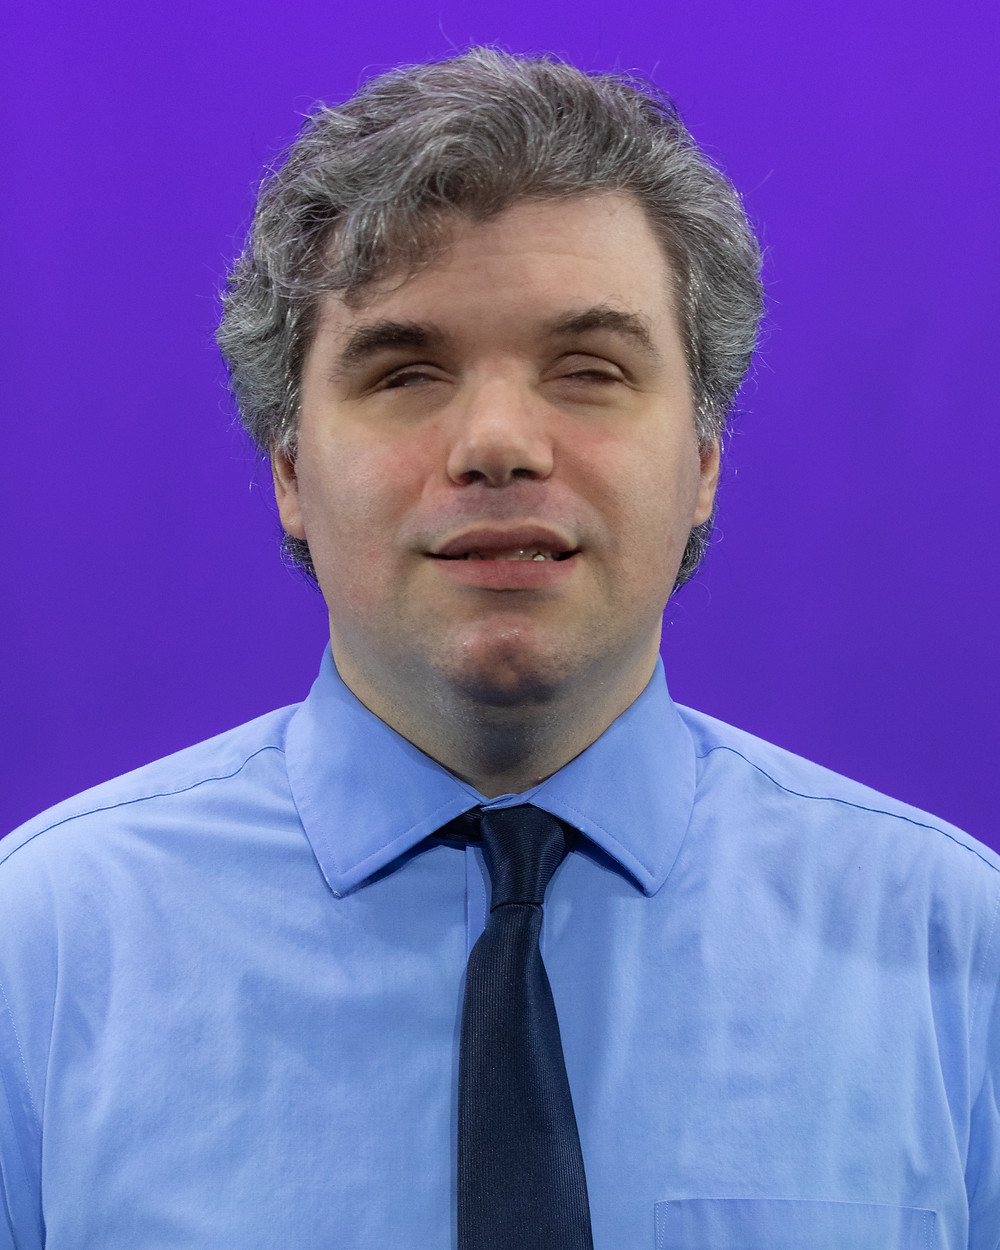 Patrick Turnage in blue shirt and tie in front of a purple background.